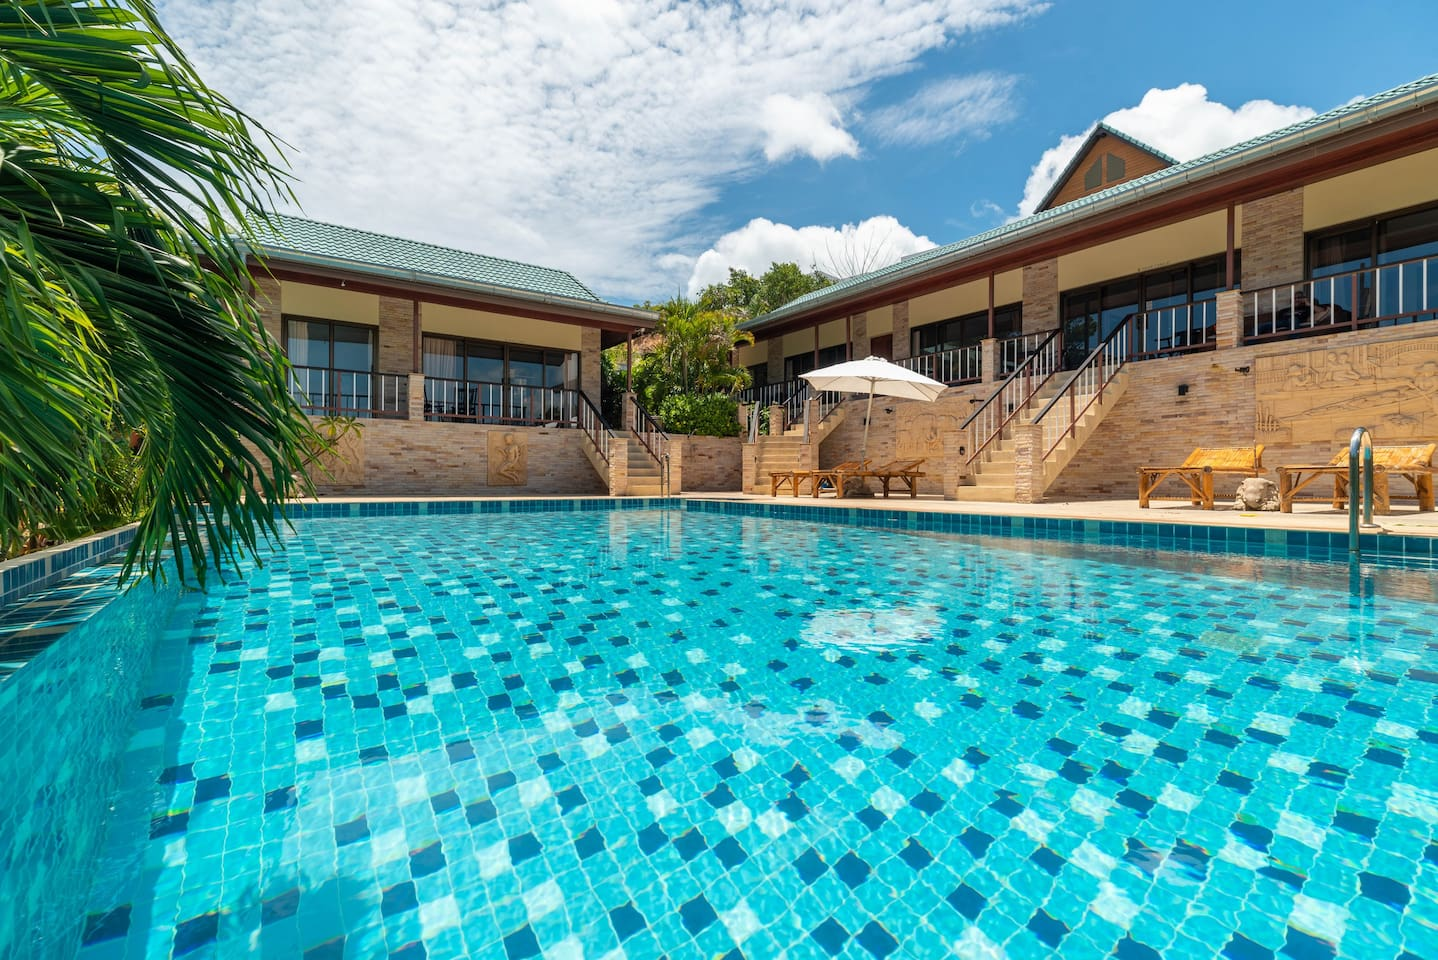 Quantic Jump Villa - Sunset seaview Villa with 4 independant bedrooms and big swimming pool